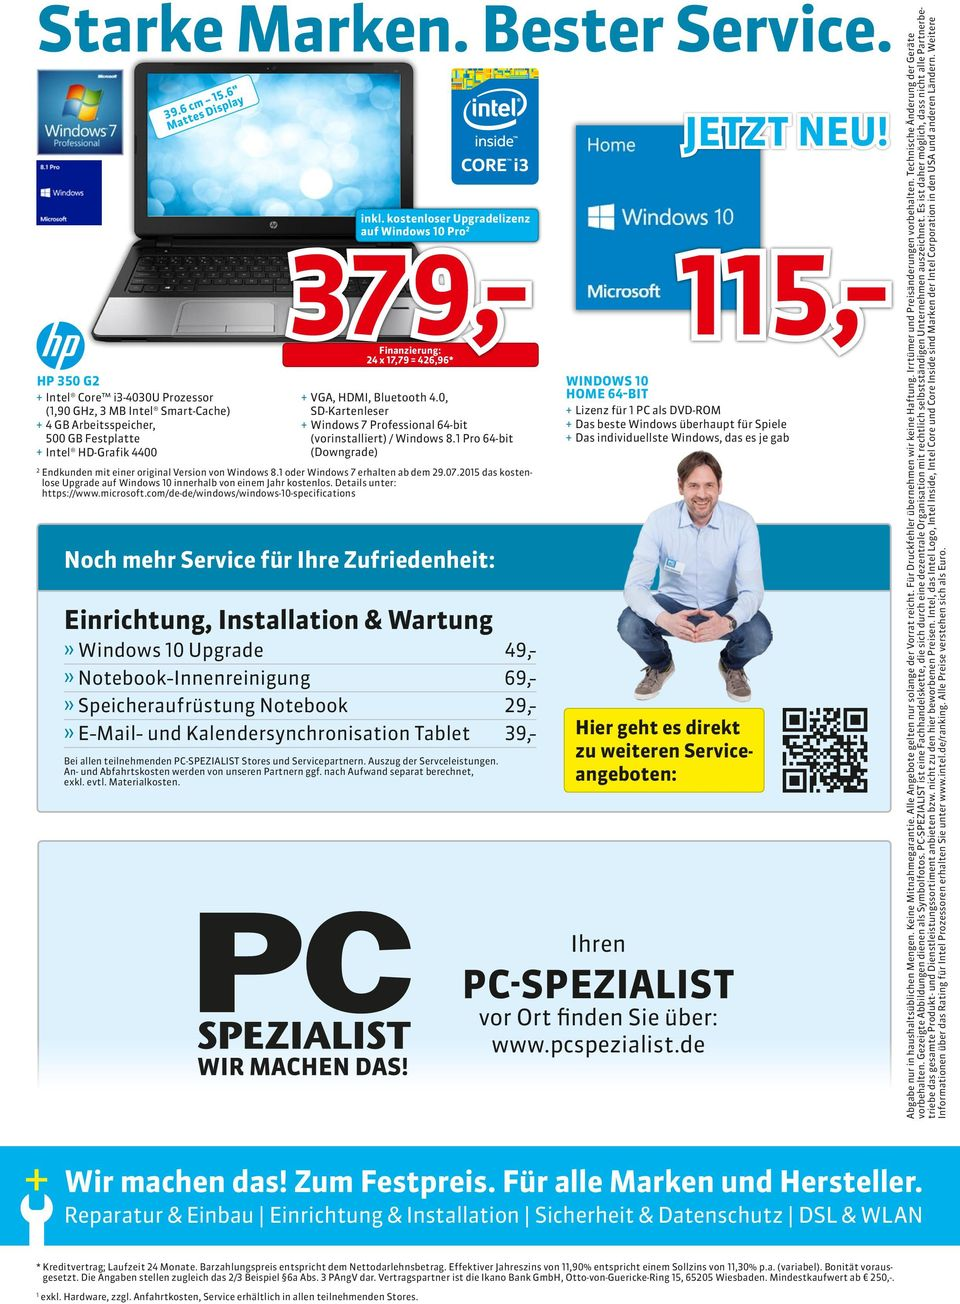 Serviceangeboten: auf Windows 10 Pro 2 379,- Finanzierung: 24 x 17,79 = 426,96* + + VGA, HDMI, Bluetooth 4.0, SD-Kartenleser + + Windows 7 Professional 64-bit (vorinstalliert) / Windows 8.